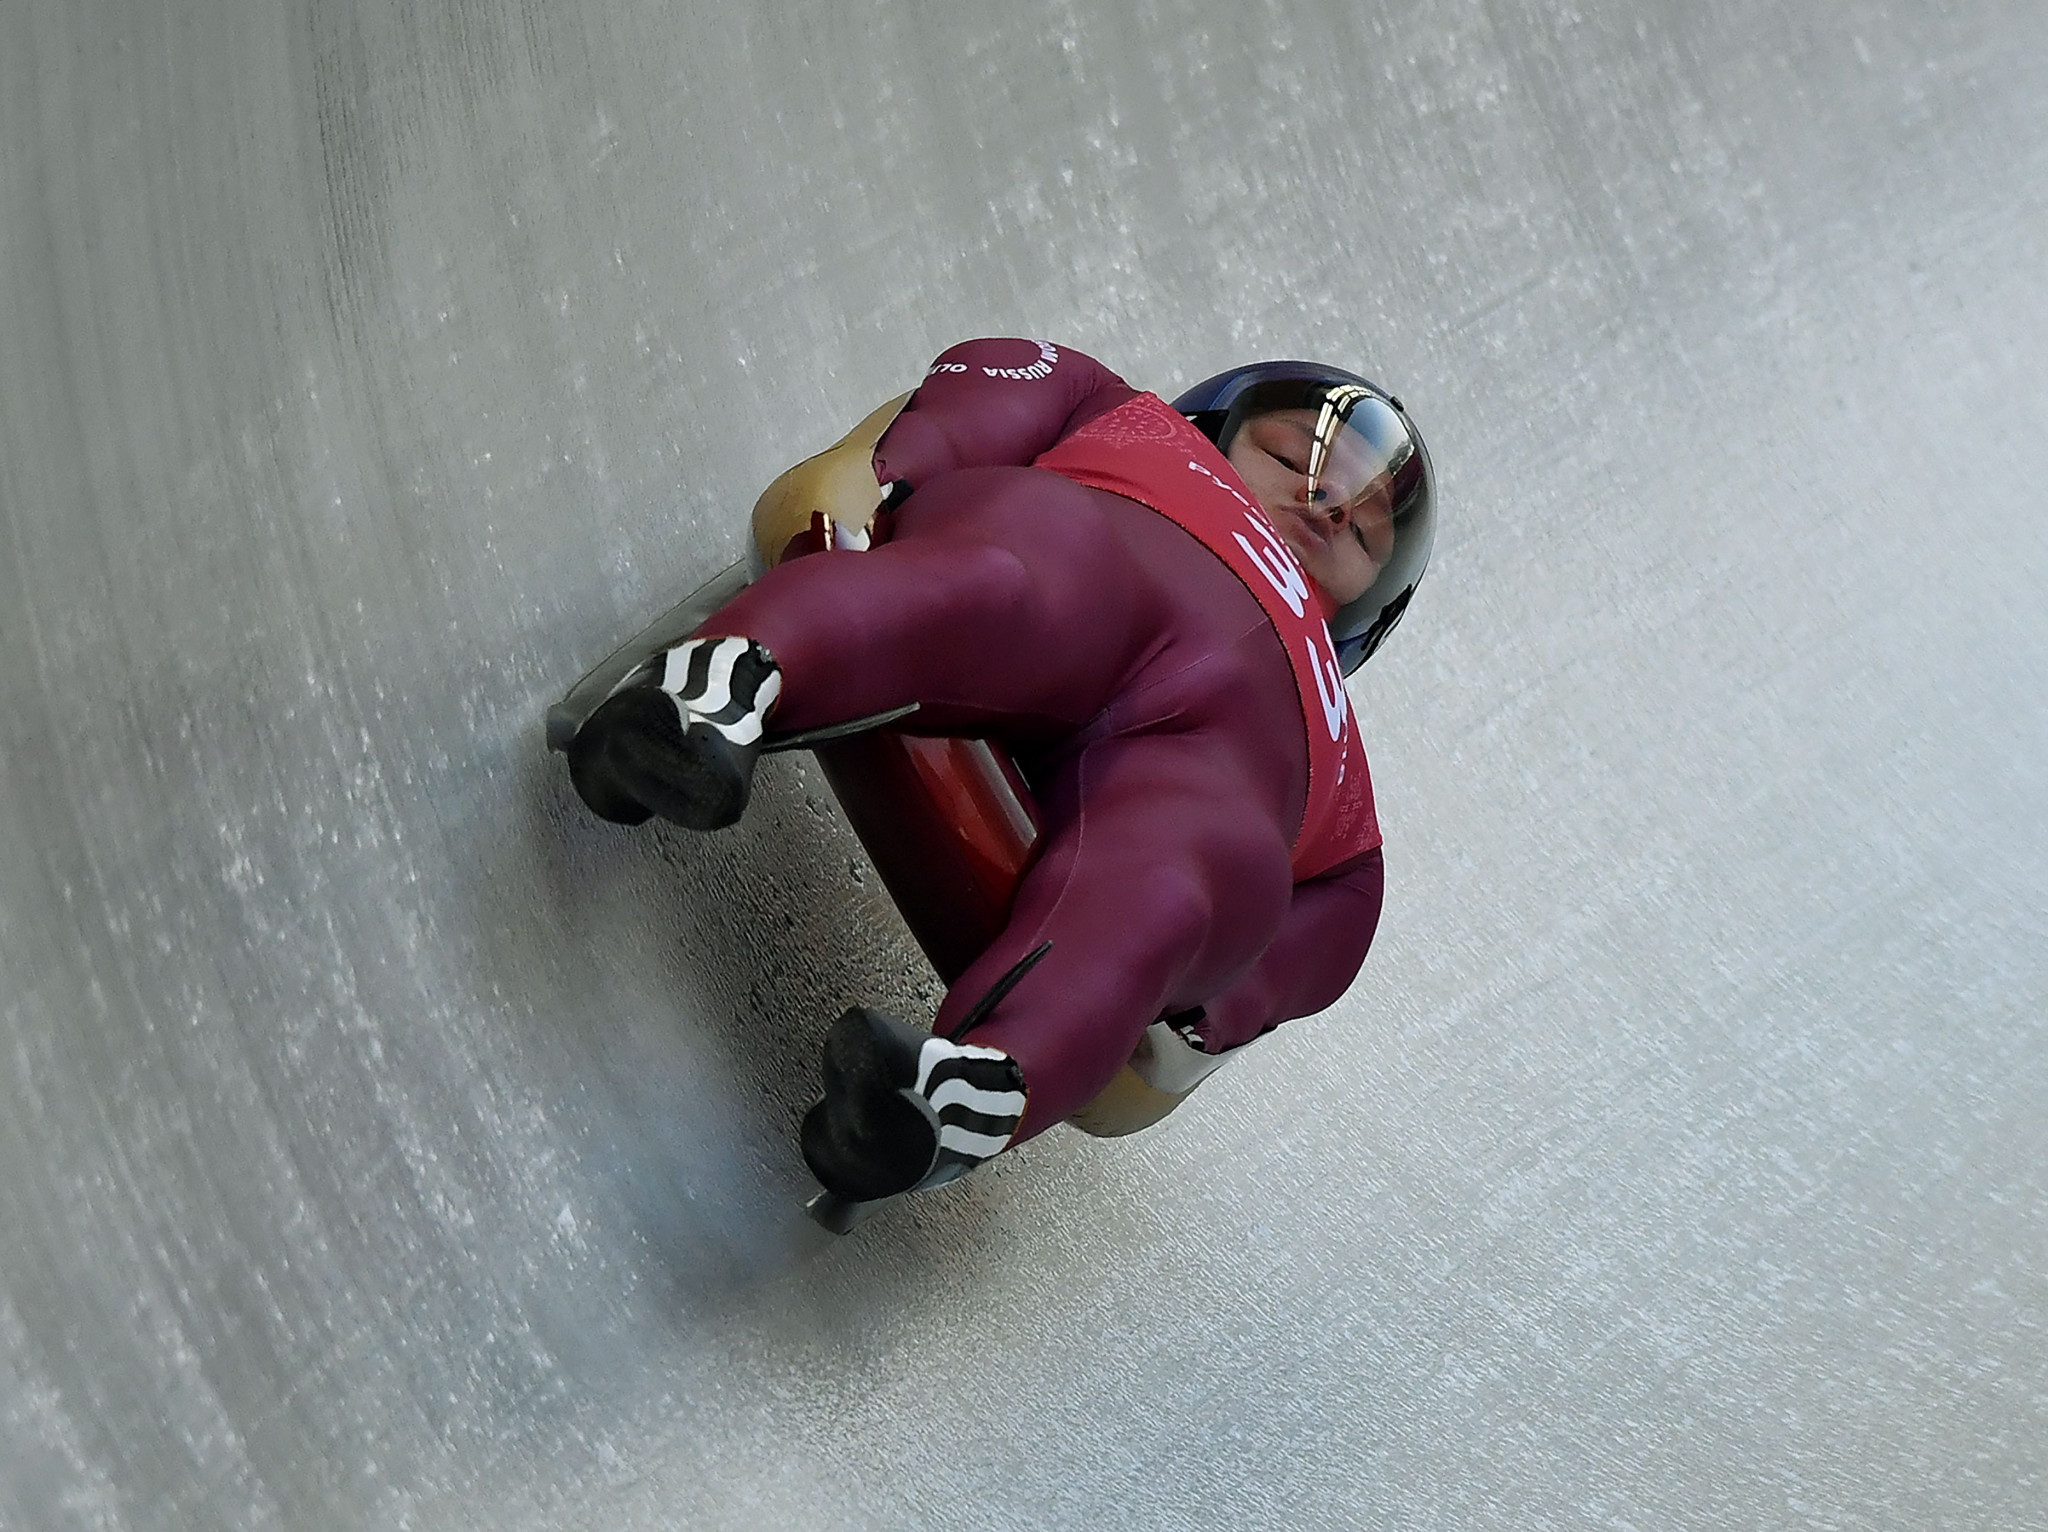 Russia sweep sprint titles as Luge World Championships open in Sochi